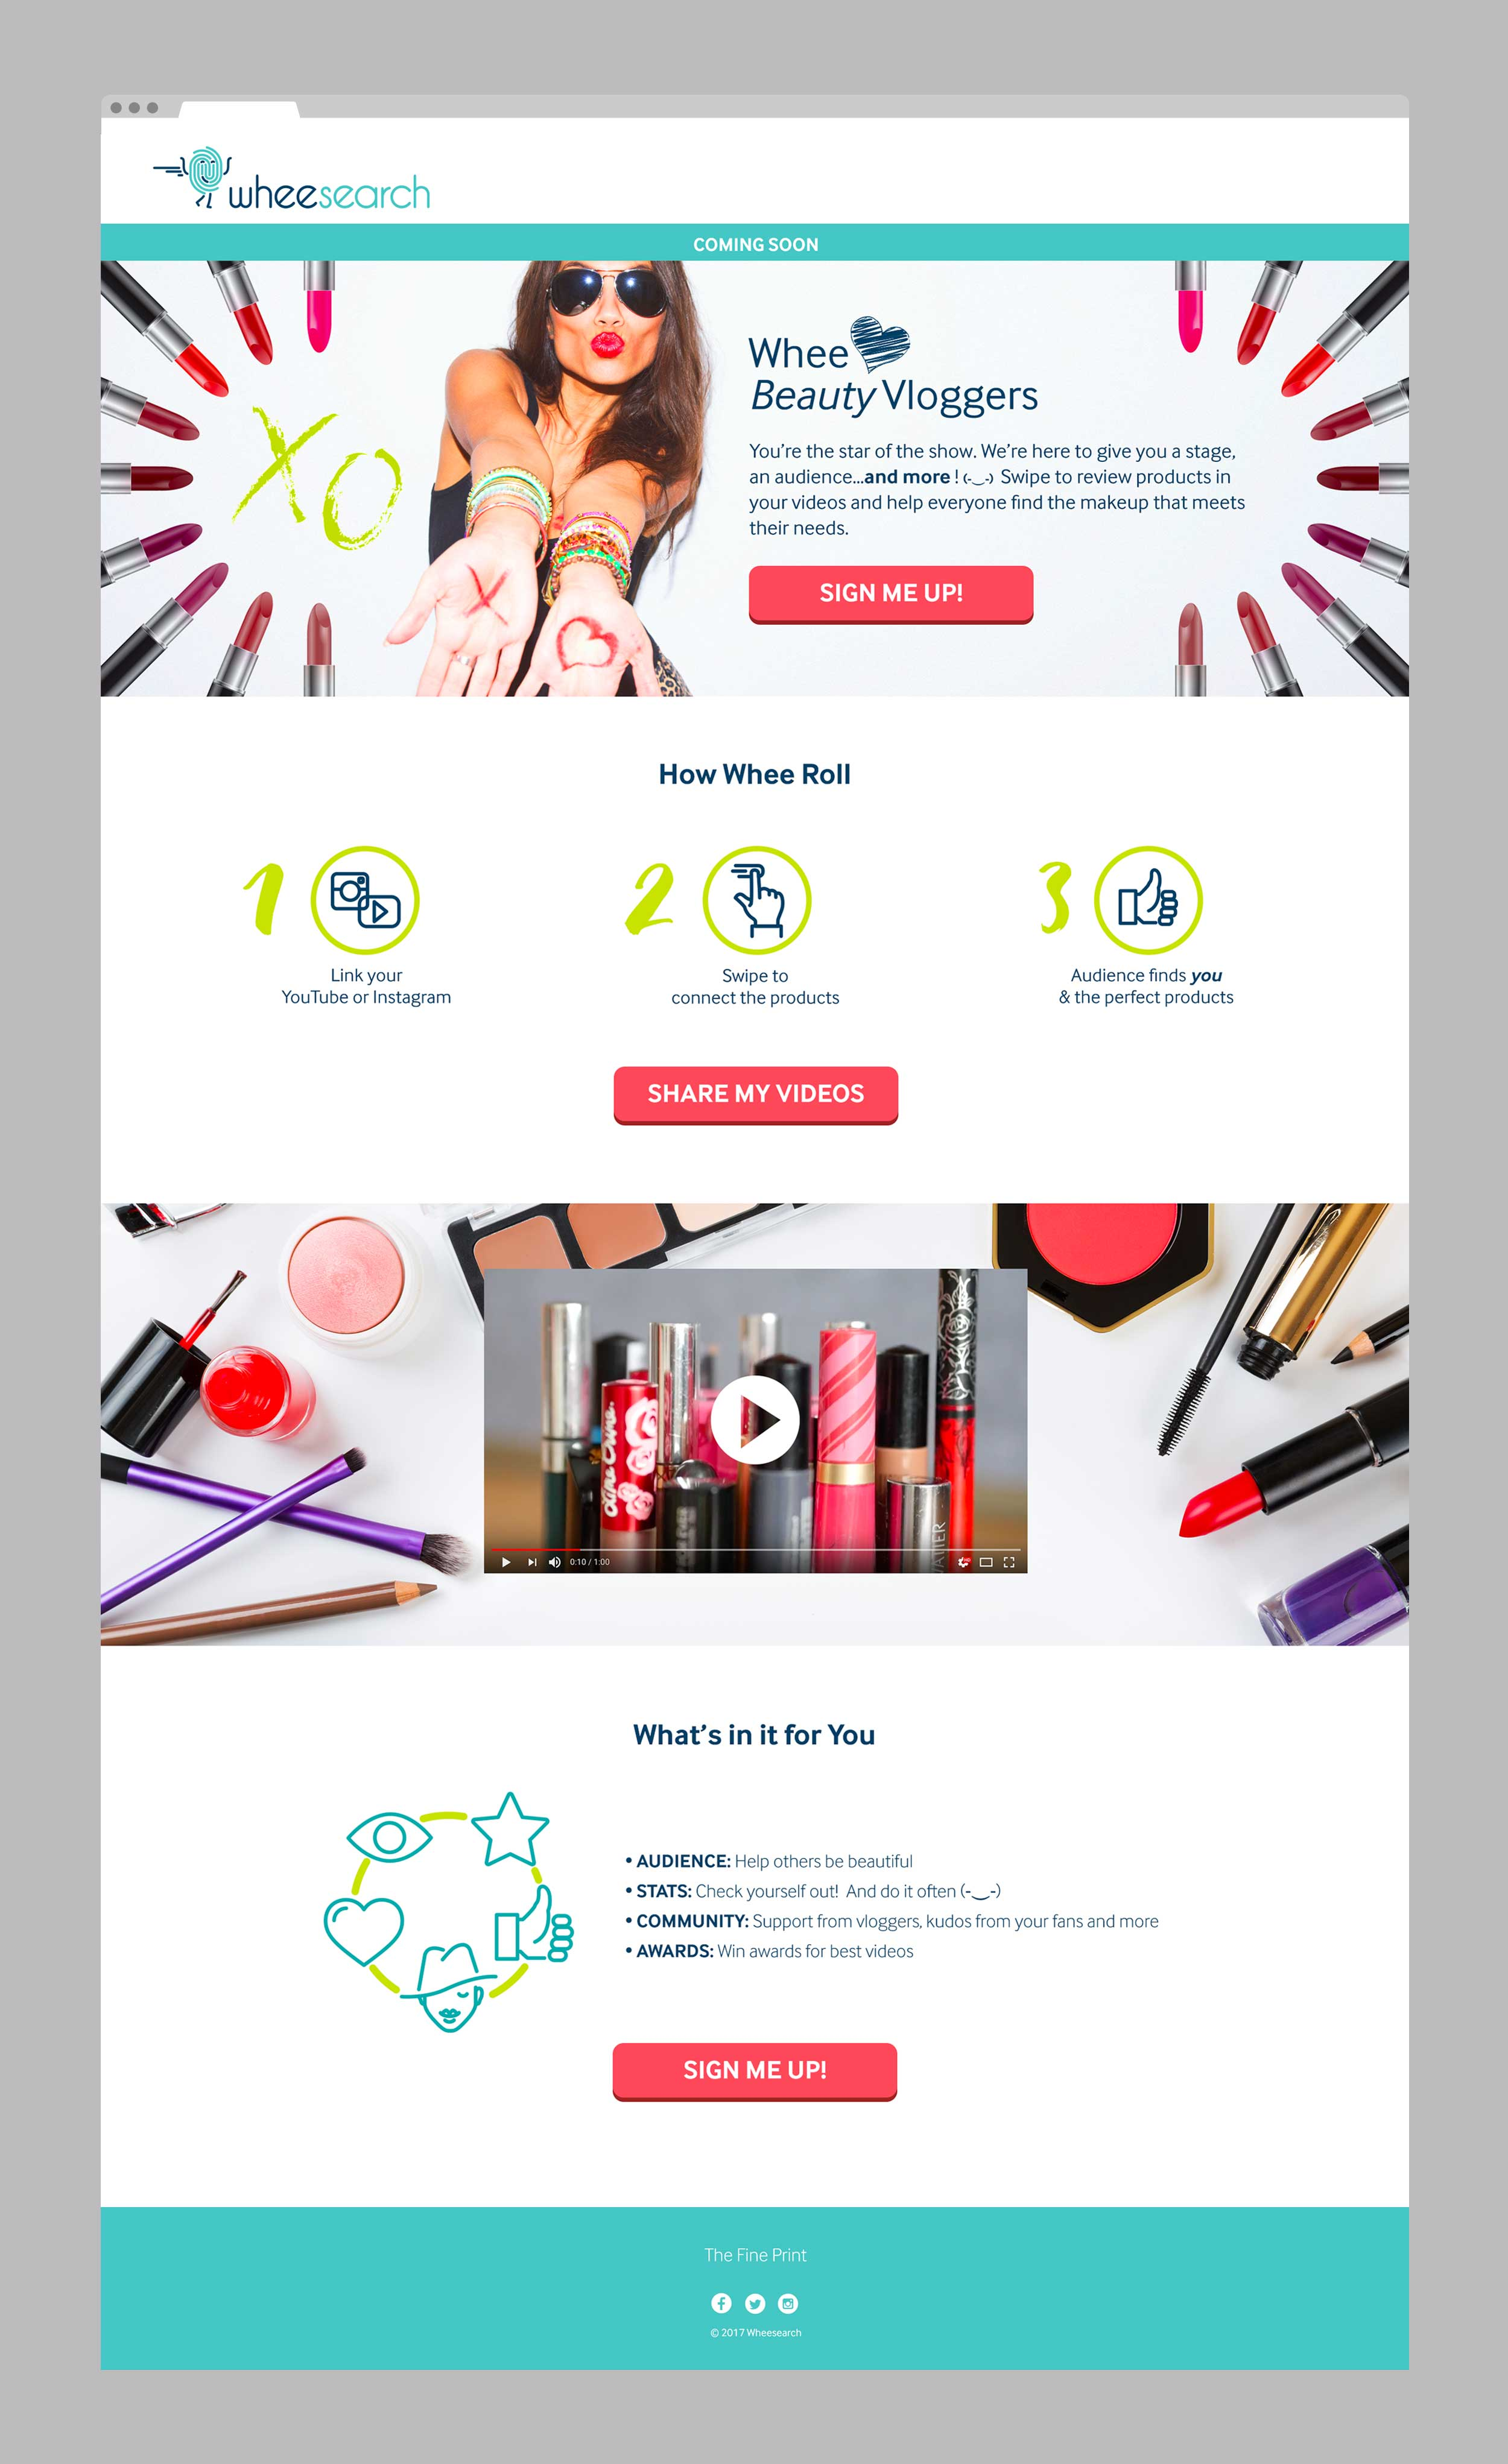 Web design landing page for the beauty vlogger audience.